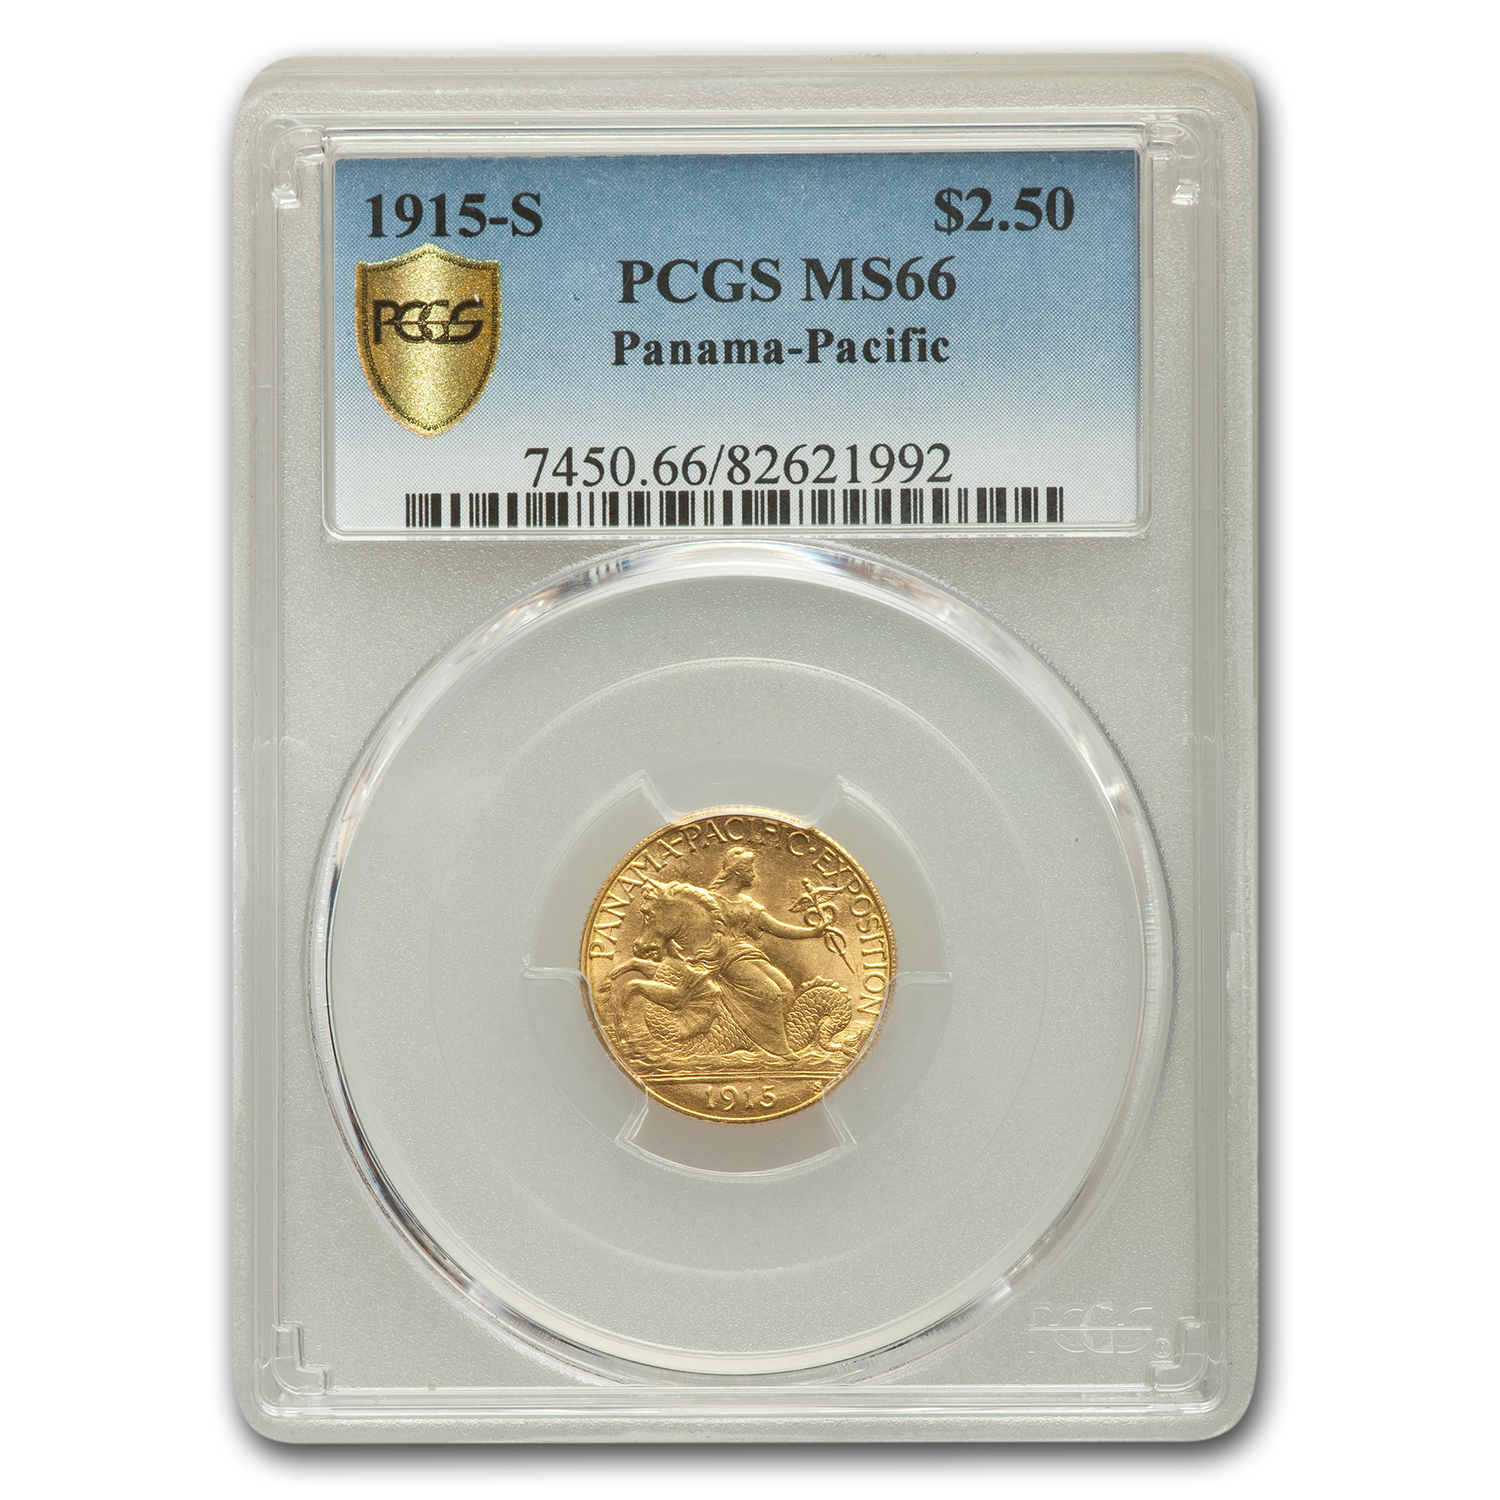 1915-S $2.50 Gold Panama-Pacific - MS-66 PCGS